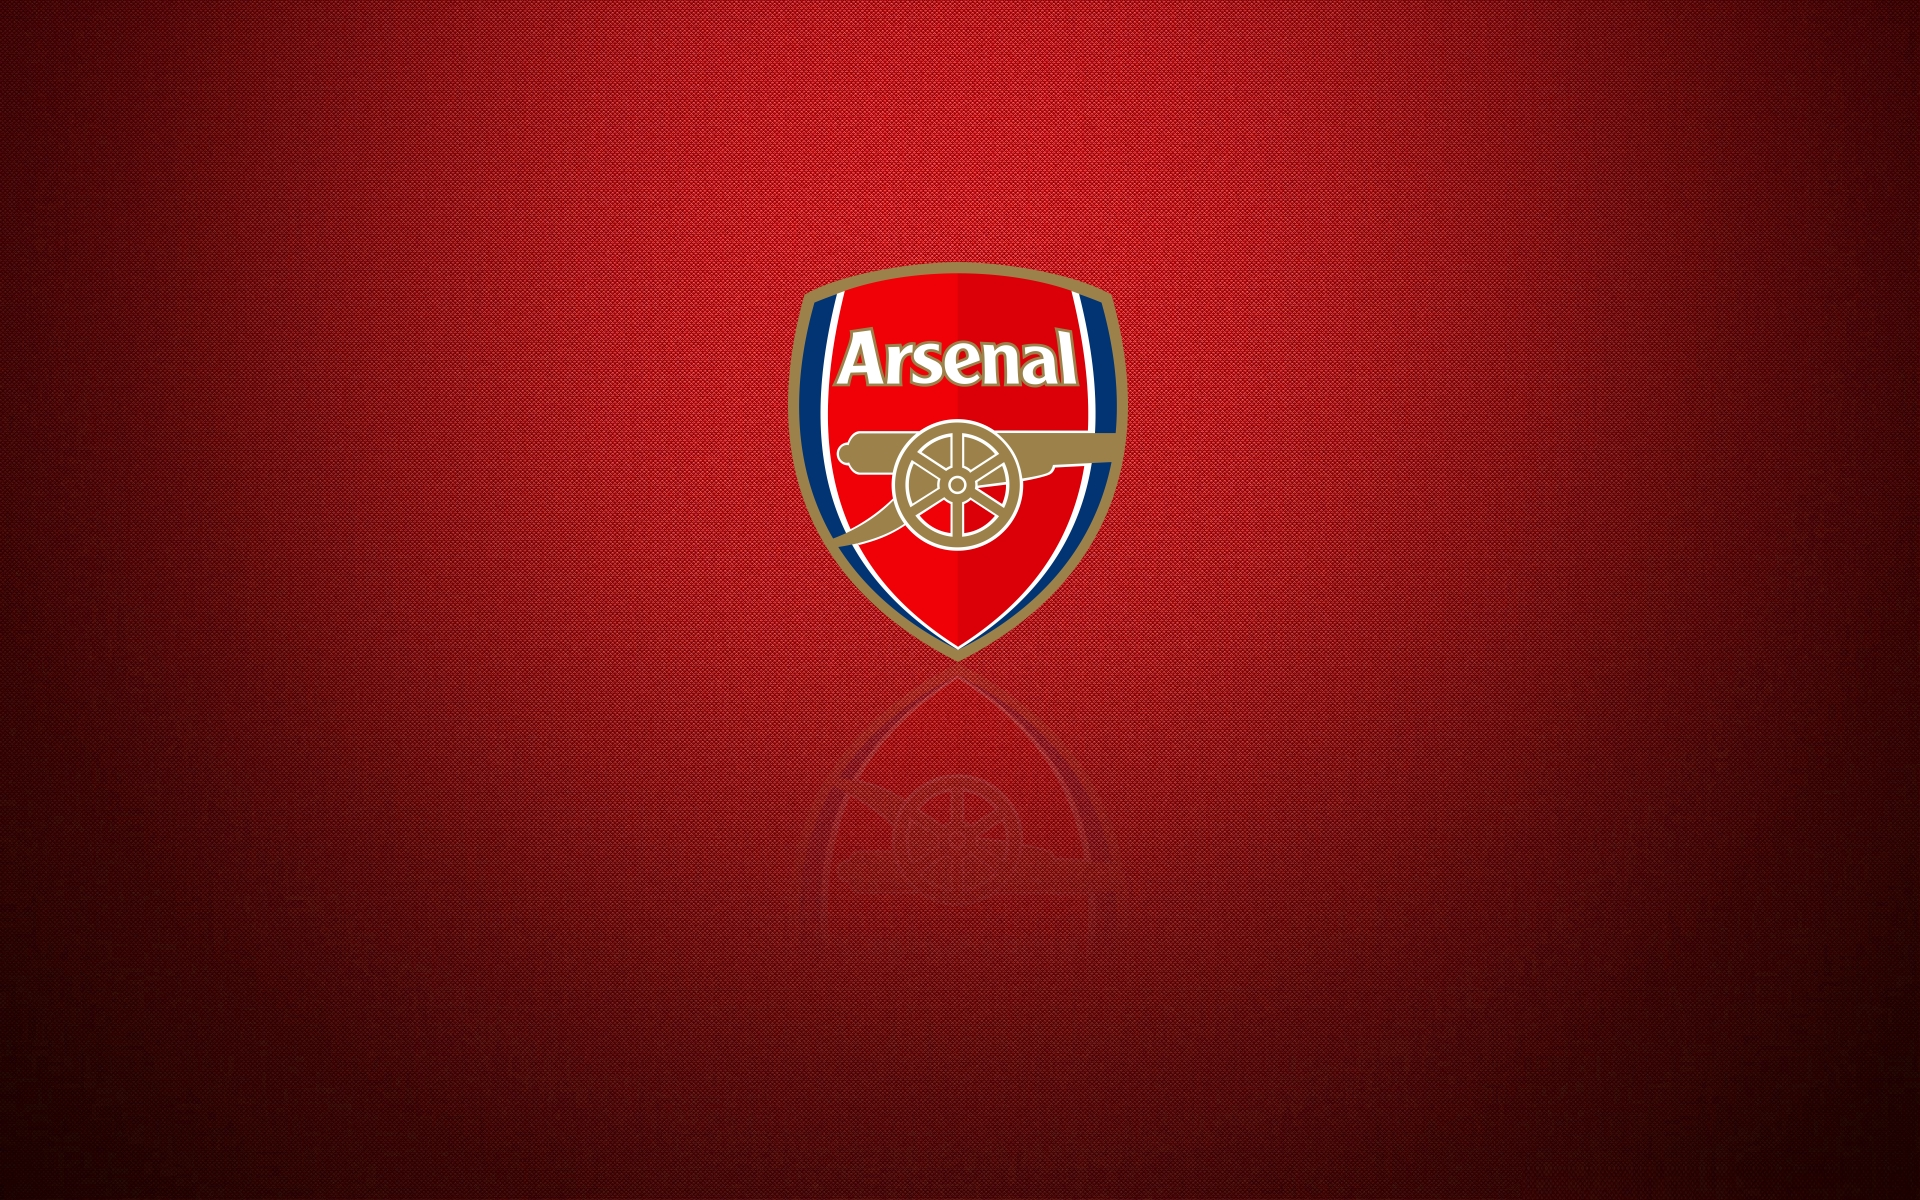 arsenal � logos download